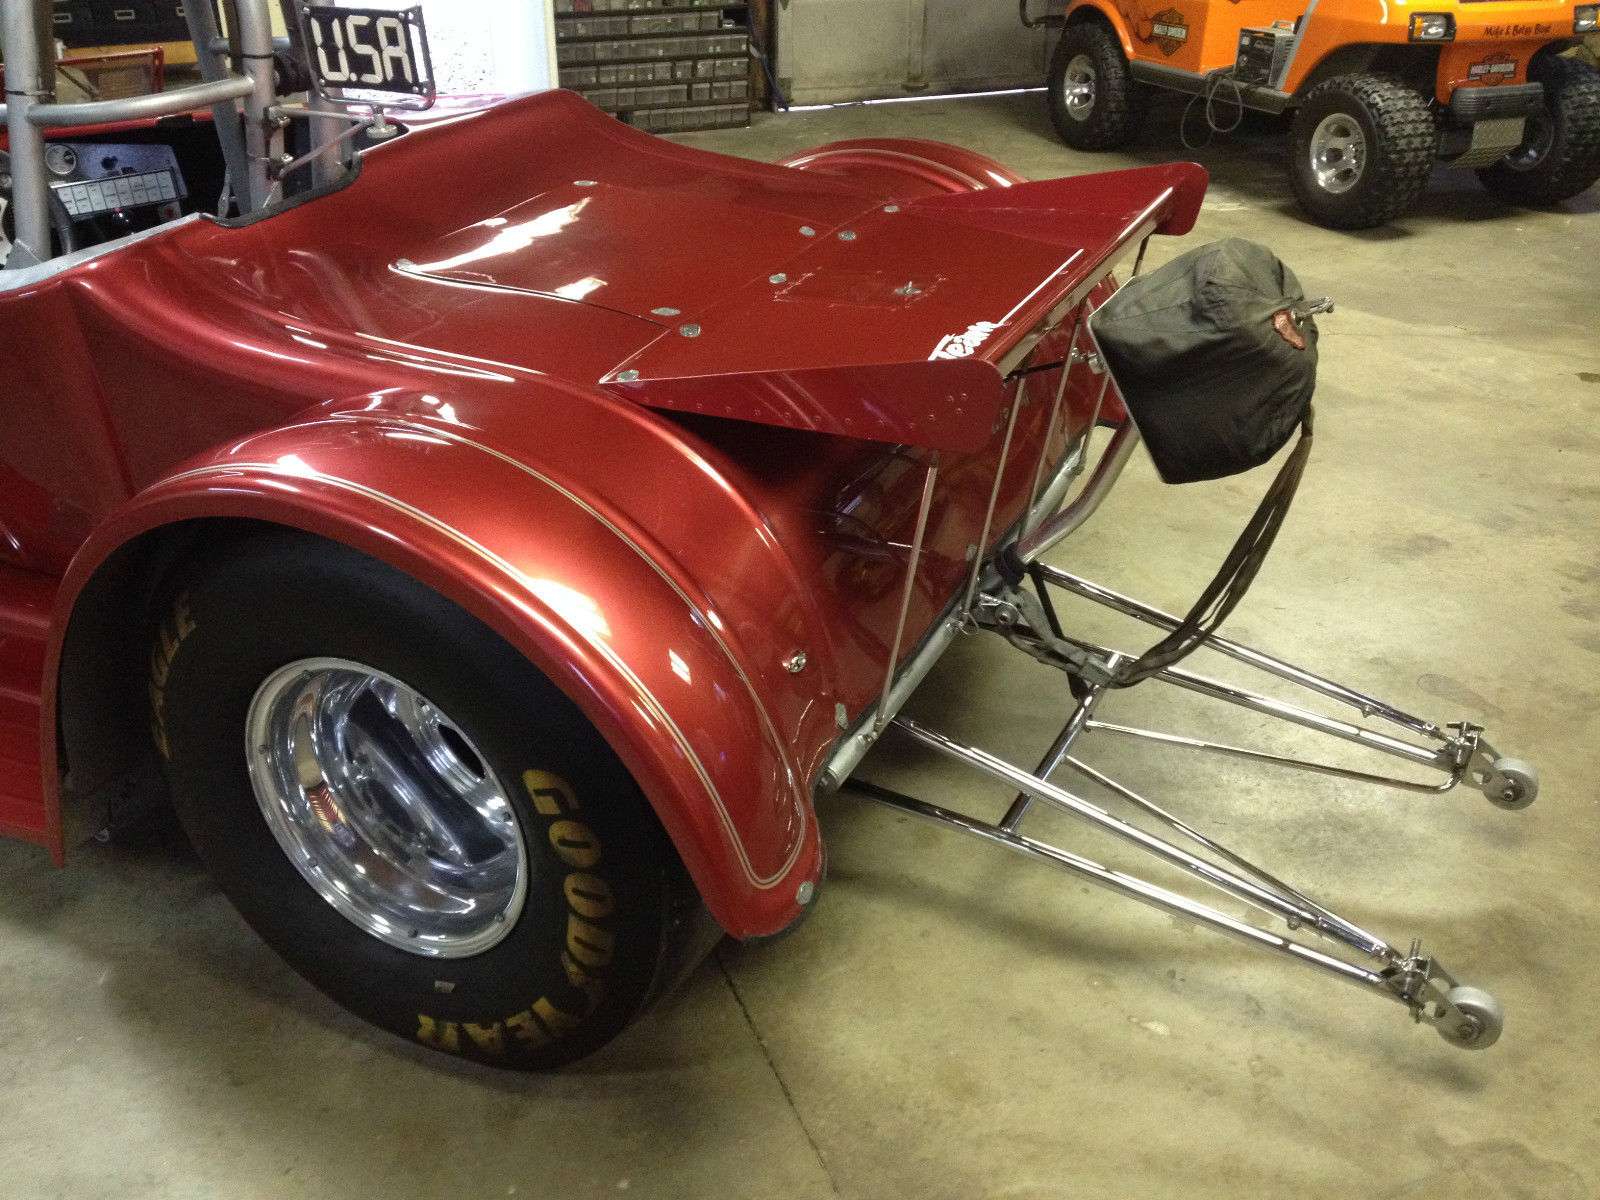 Grudge Racing Cars For Sale In California